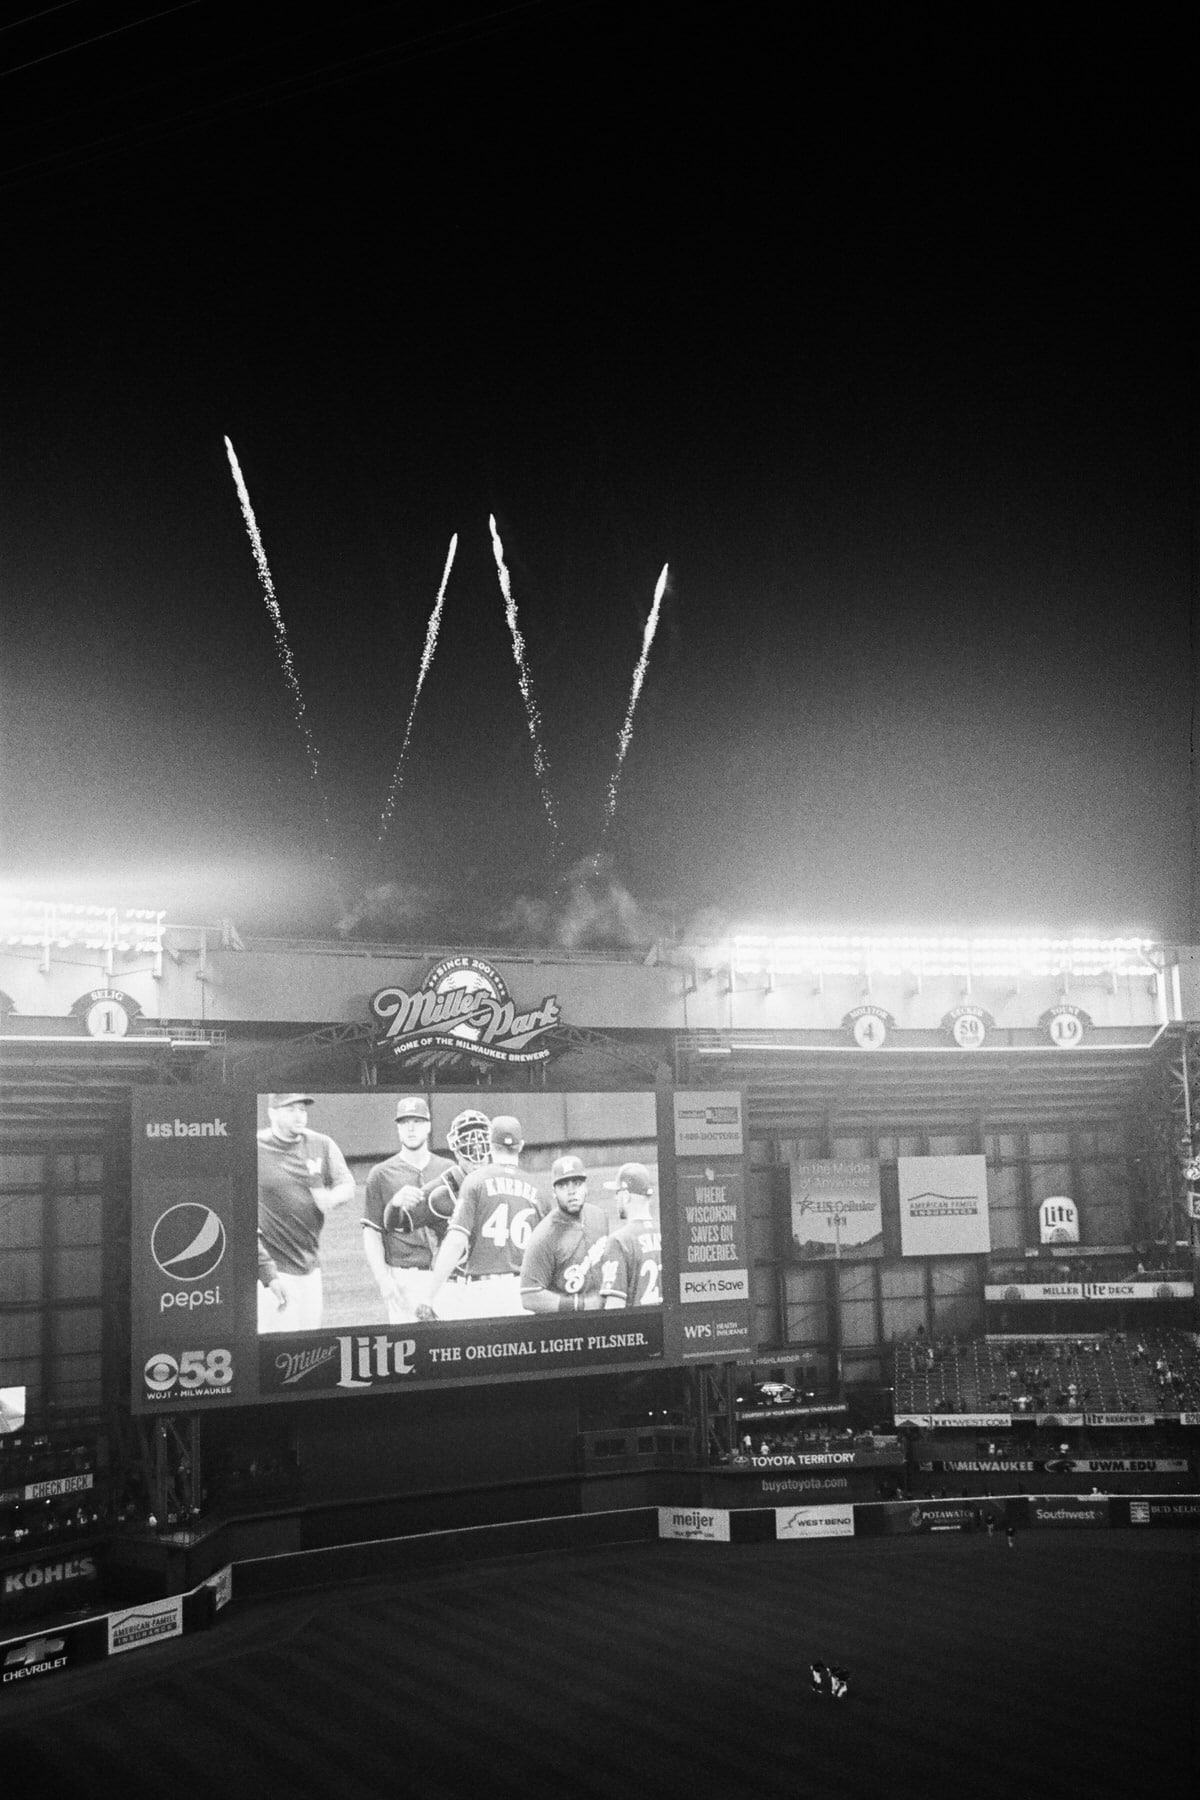 Brewers-Miller-Park-Milwaukee-Wisconsin-fine-art-black-and-white-film-photography-by-Studio-L-photographer-Laura-Schneider-_027